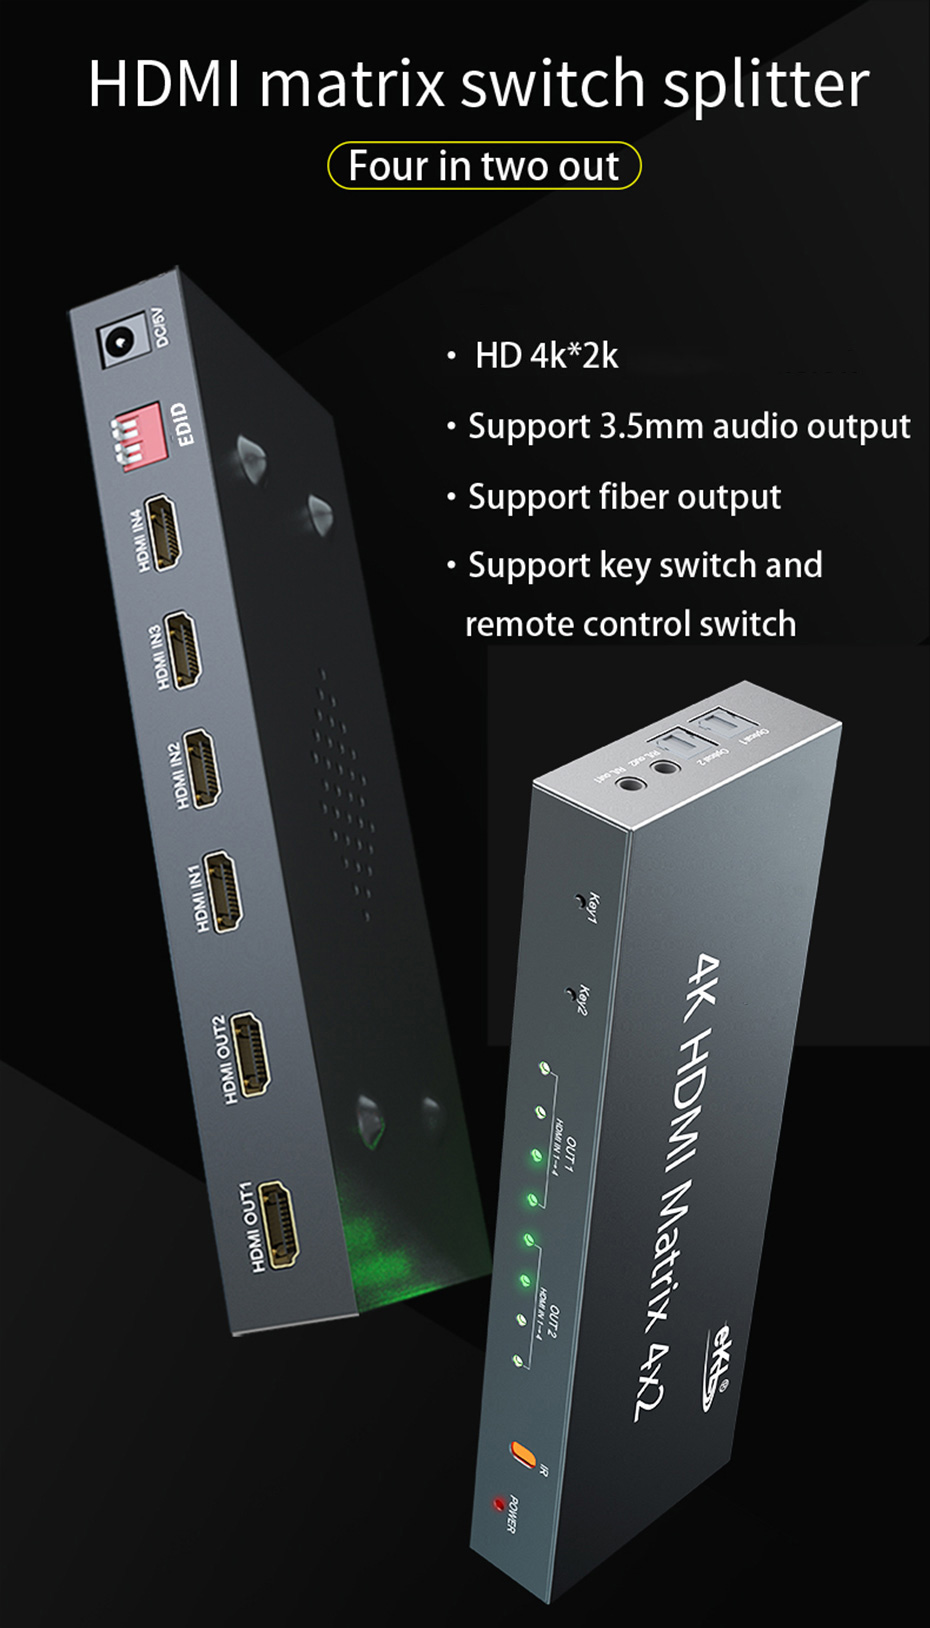 HDMI matrix 4 in 2 out 412H